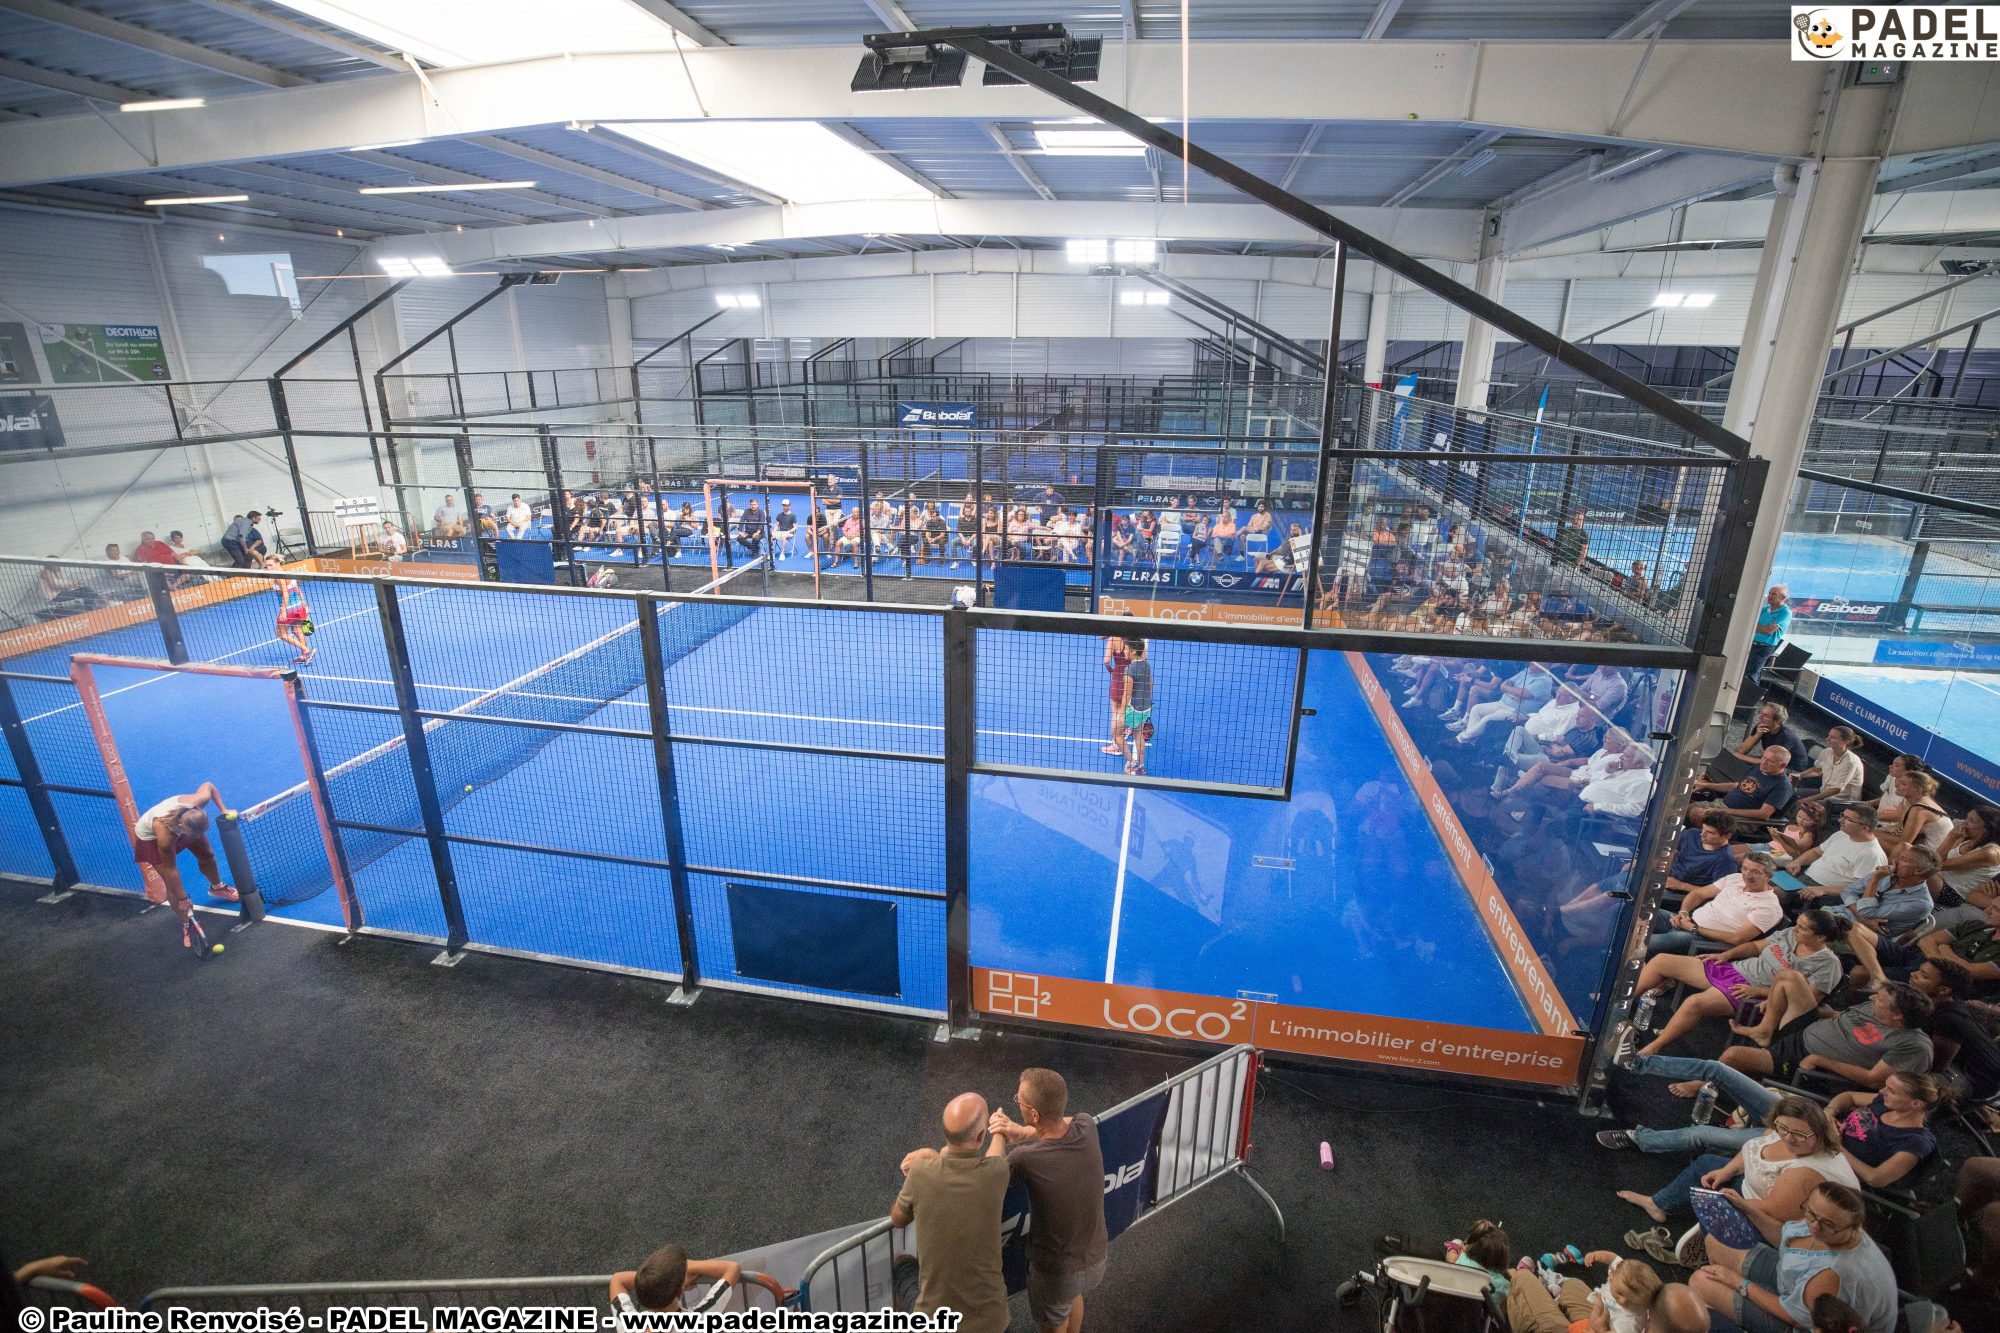 Toulouse padel club pushes the walls in 2020